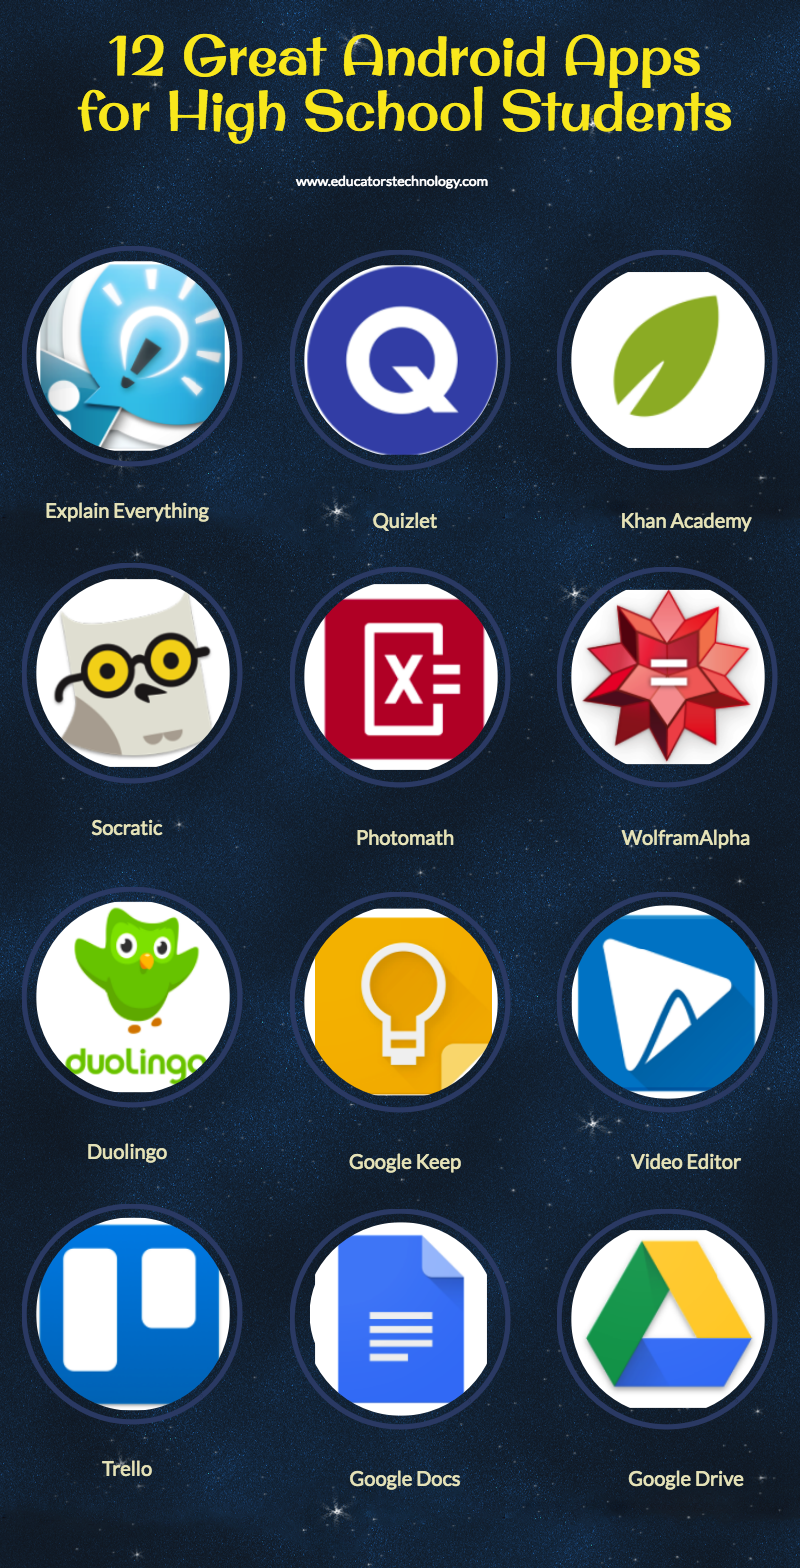 12 Great Android Apps for High School Students